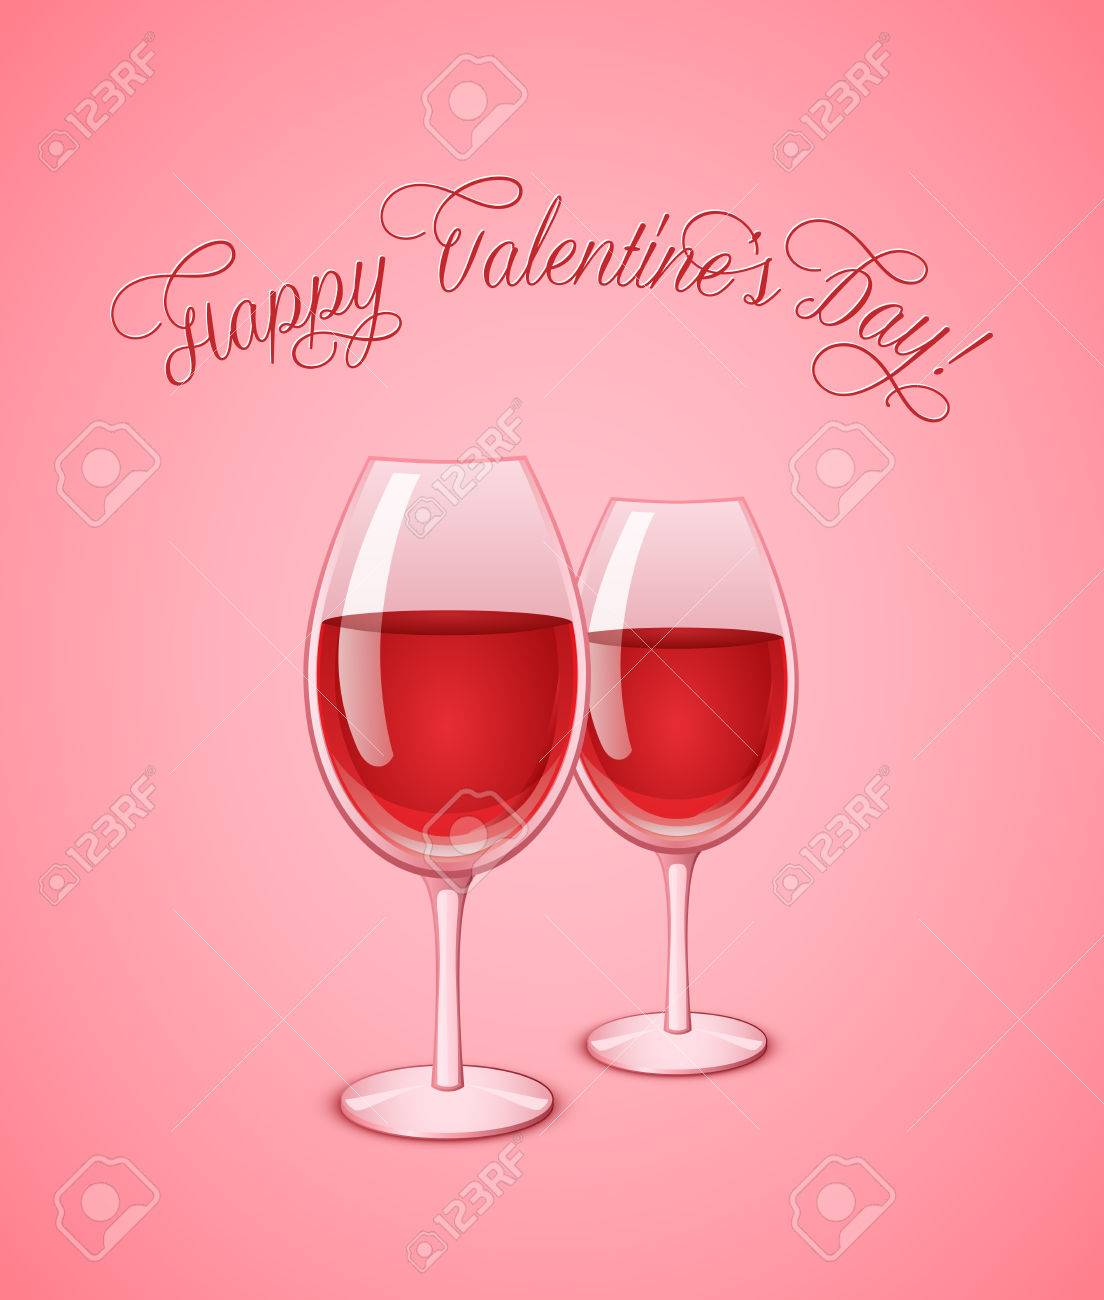 valentine wineglasses with red wine on pink background wine glass vector illustration stock vector - Valentine Wine Glasses